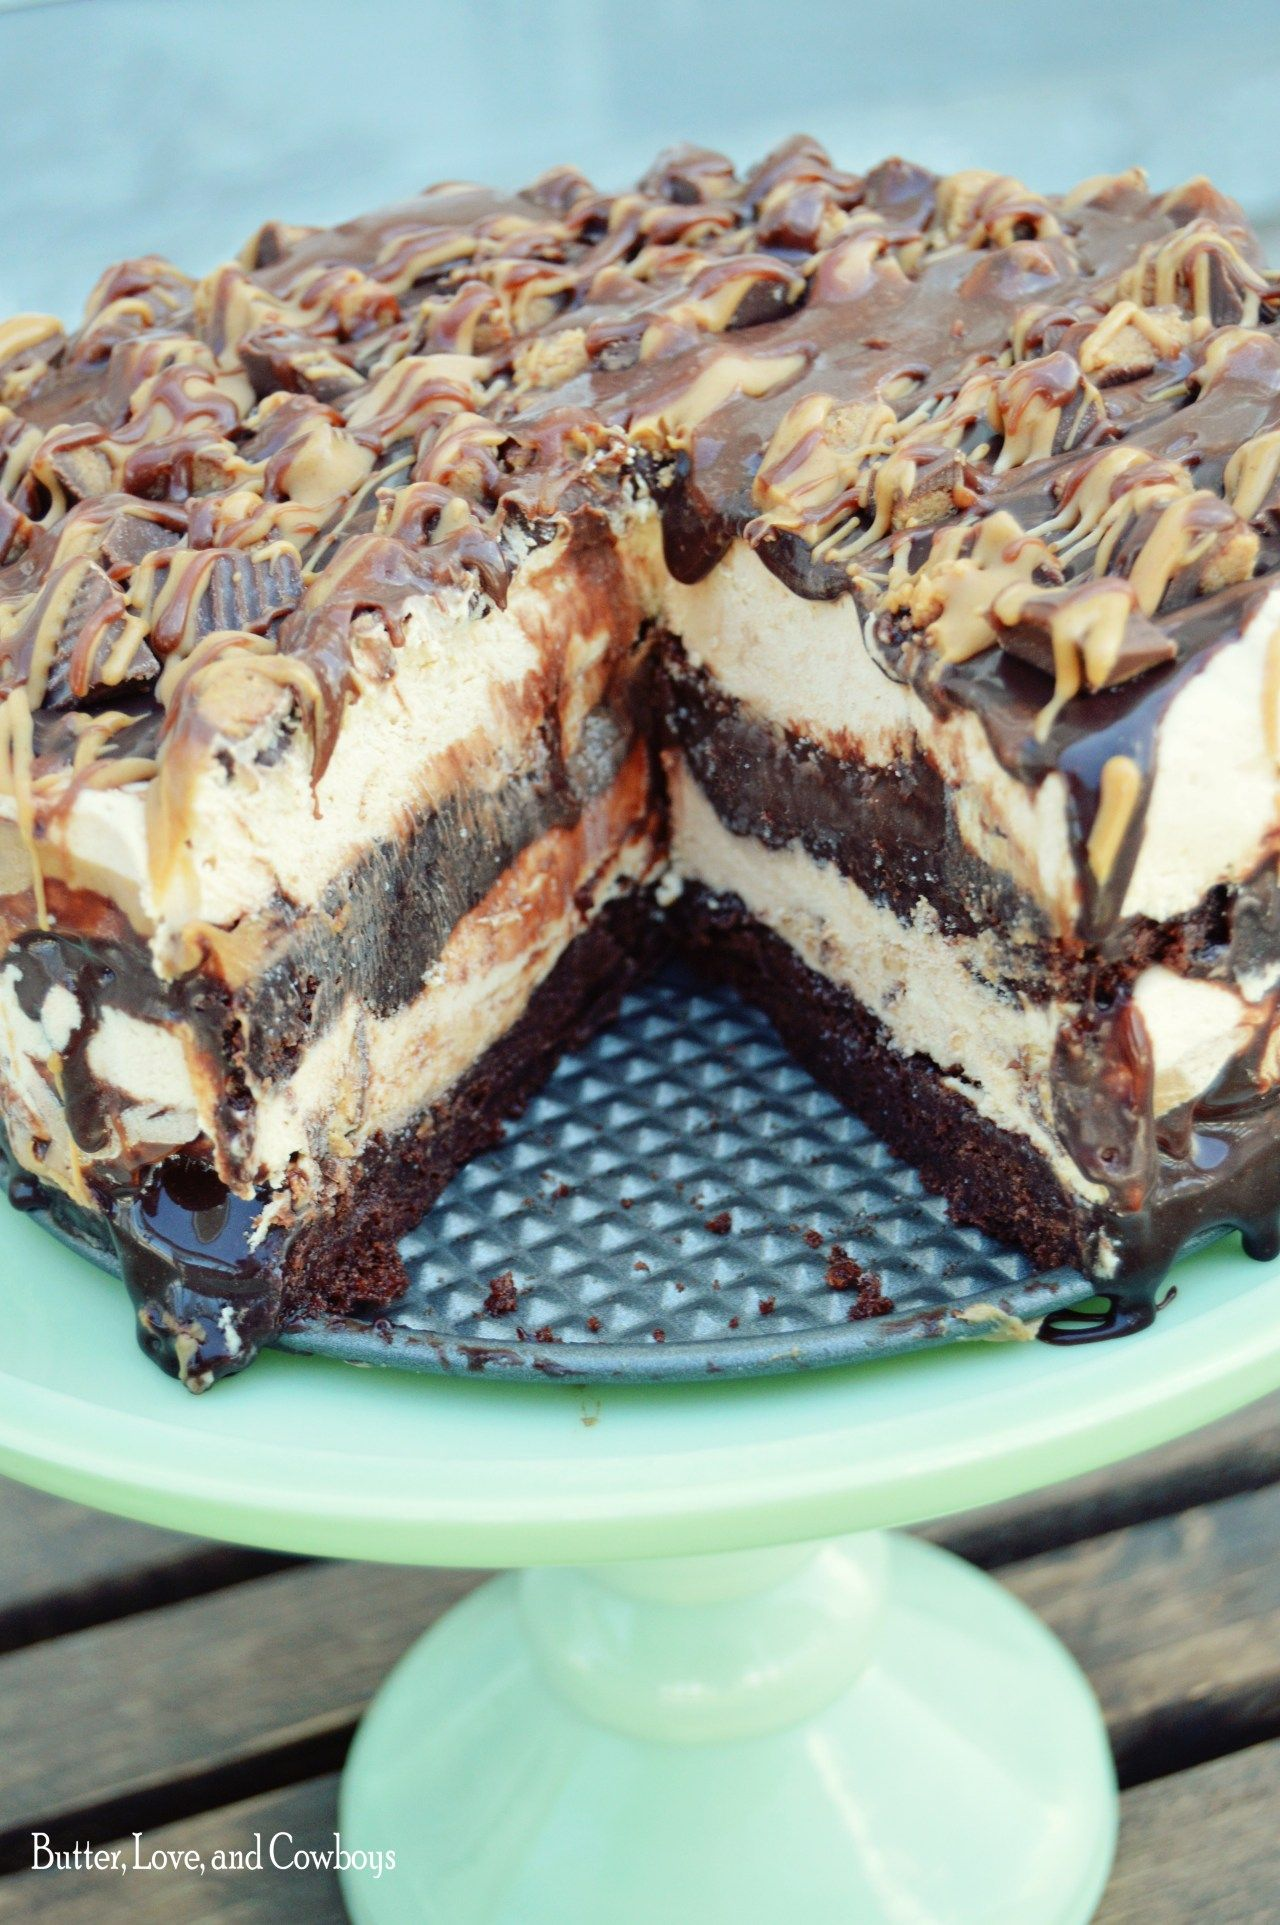 Reese's Peanut Butter Brownie Ice Cream Cake - Butter, Love, and Cowboys